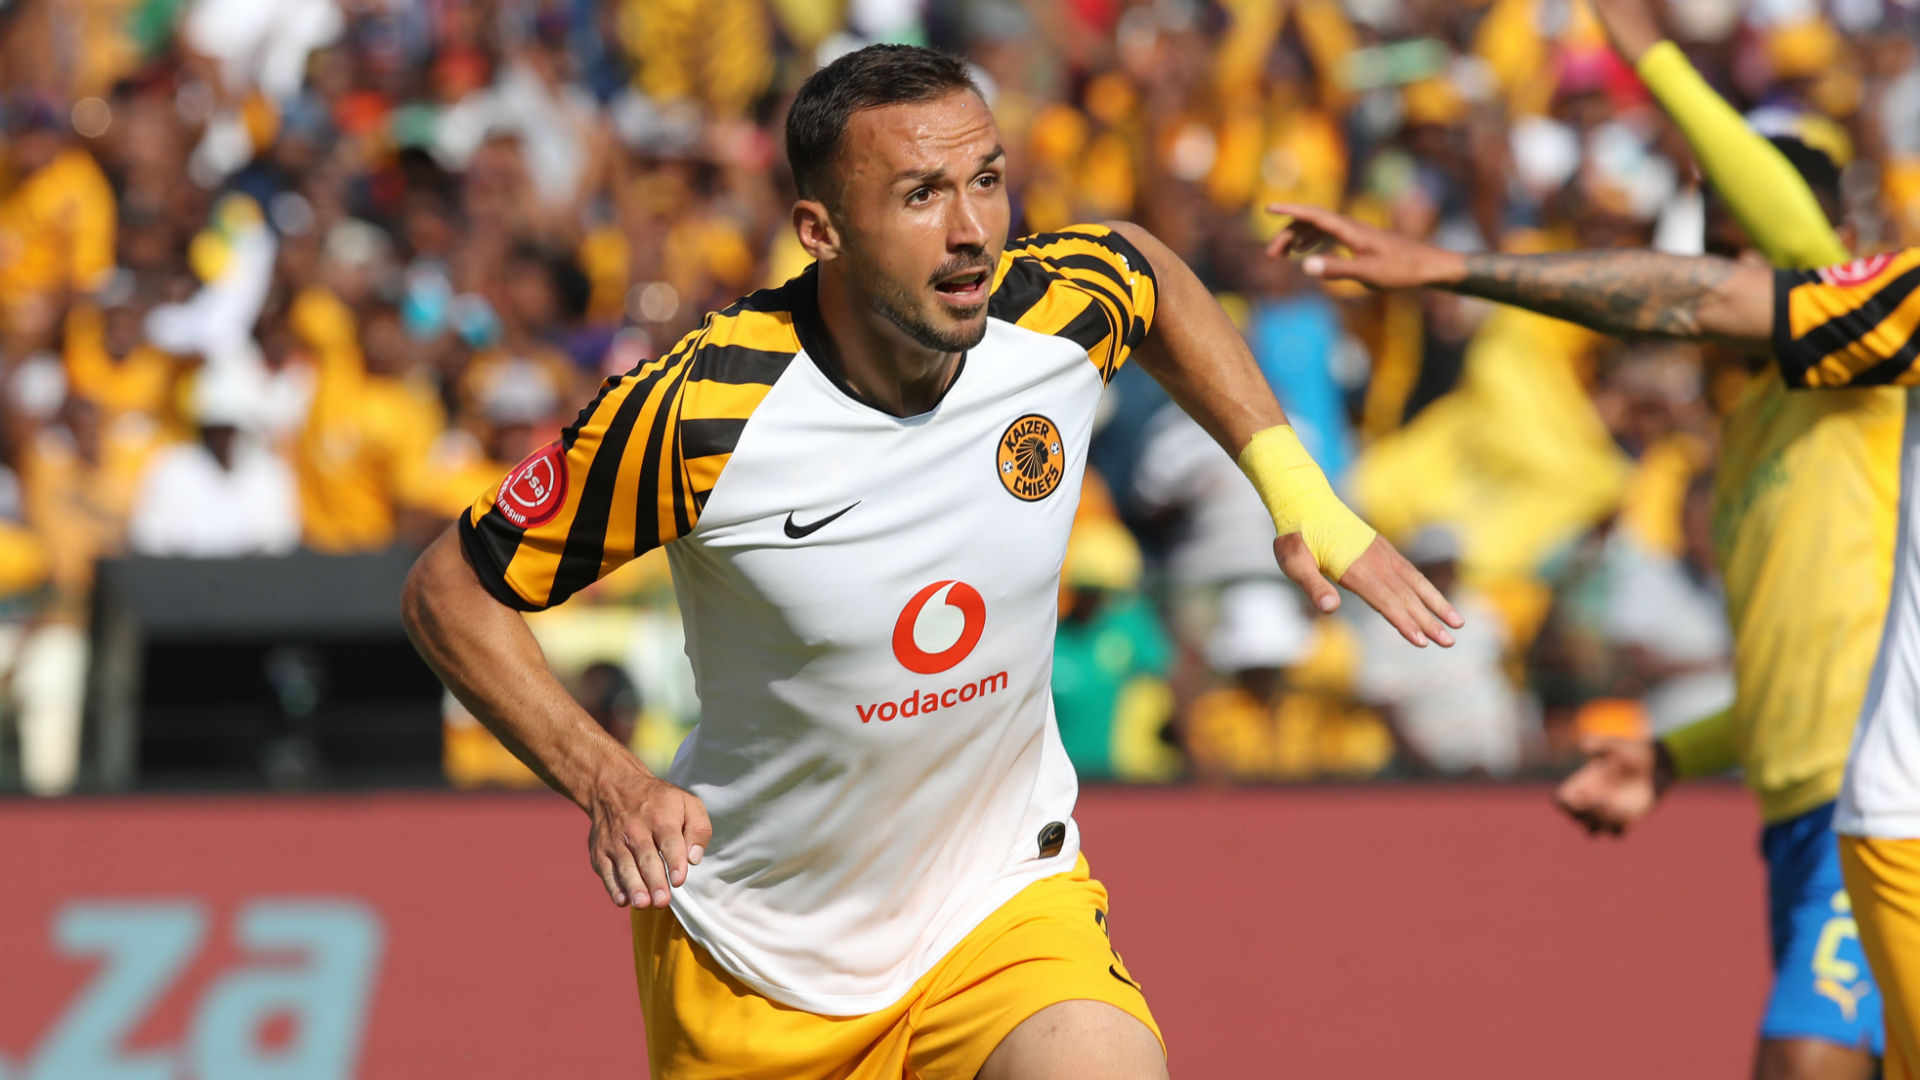 'I'm not happy when I don't score in a game' - Kaizer Chiefs' Nurkovic